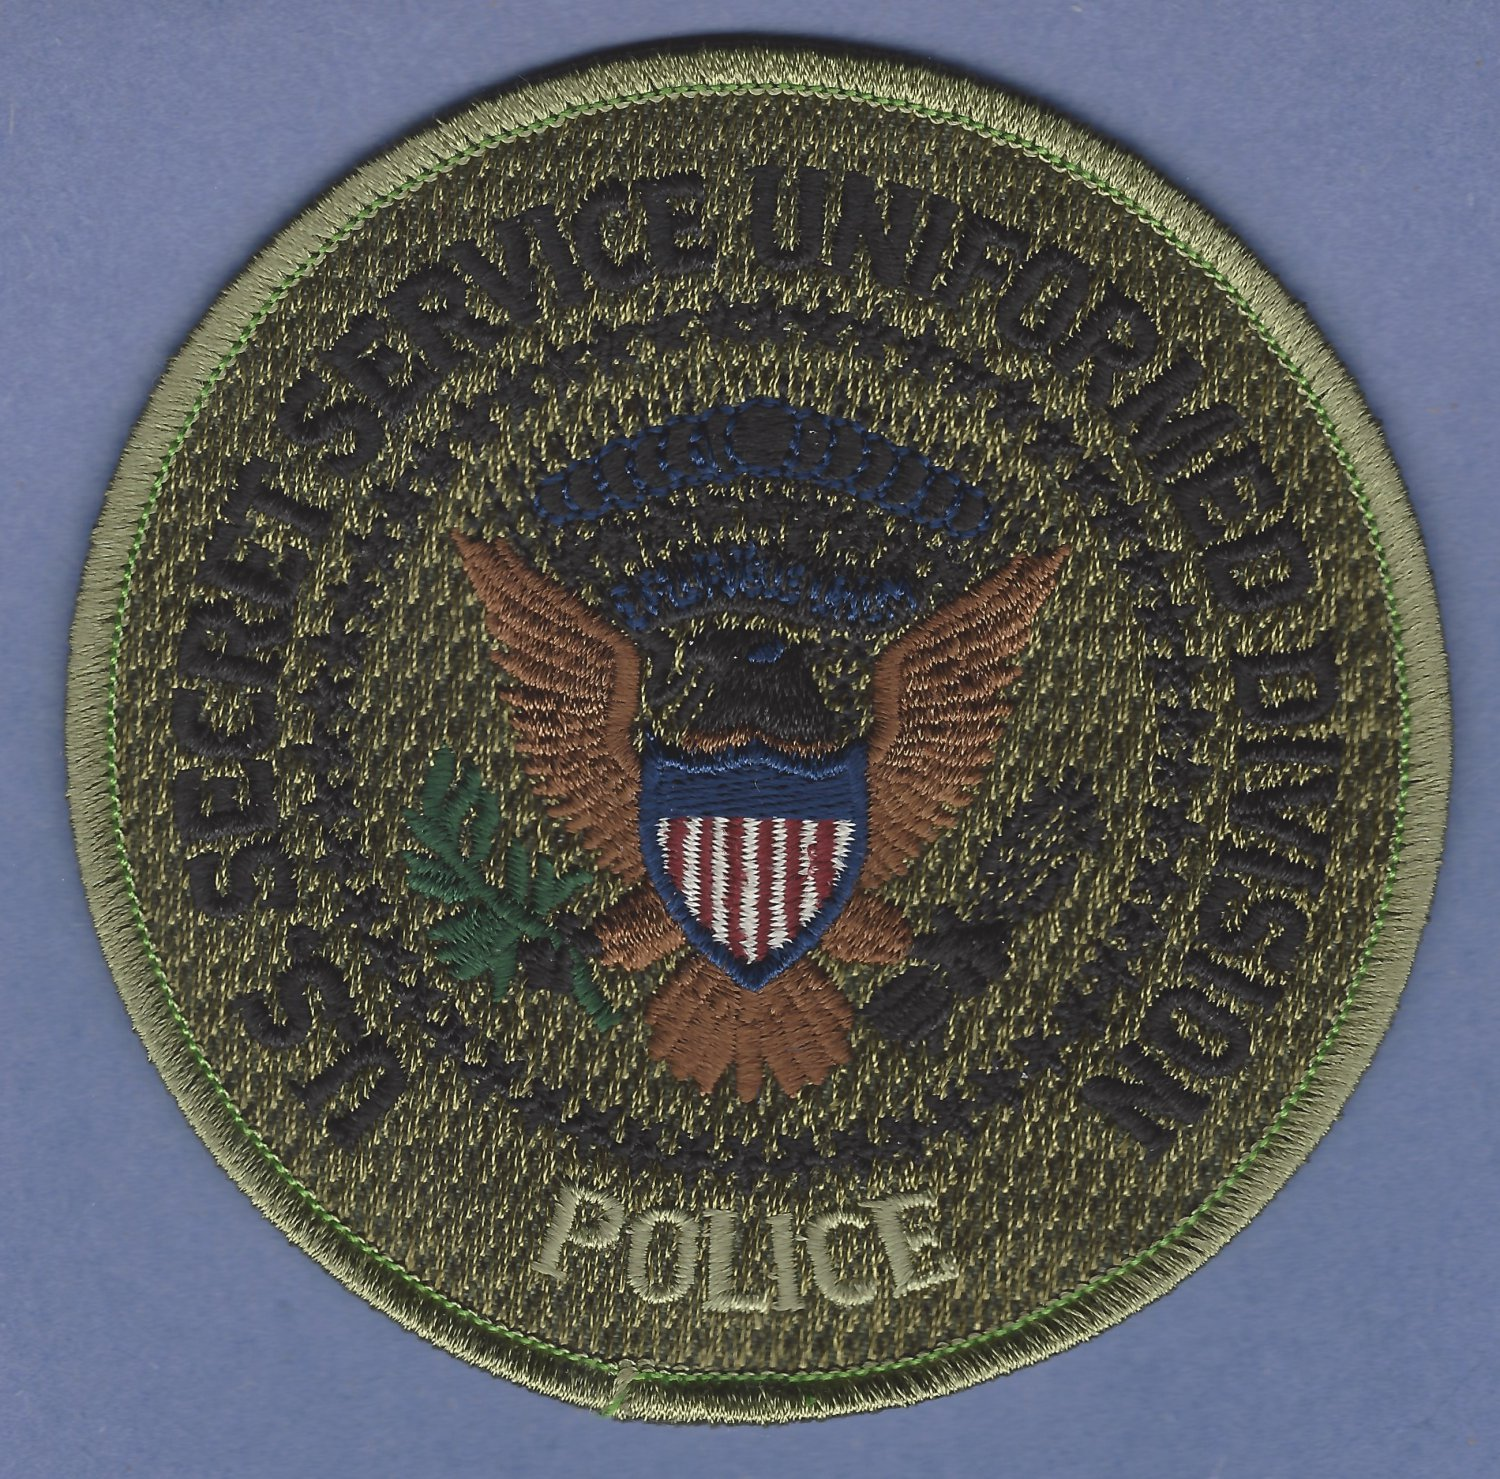 UNITED STATES SECRET SERVICE UNIFORM DIVISION PATCH SUBDUED GREEN